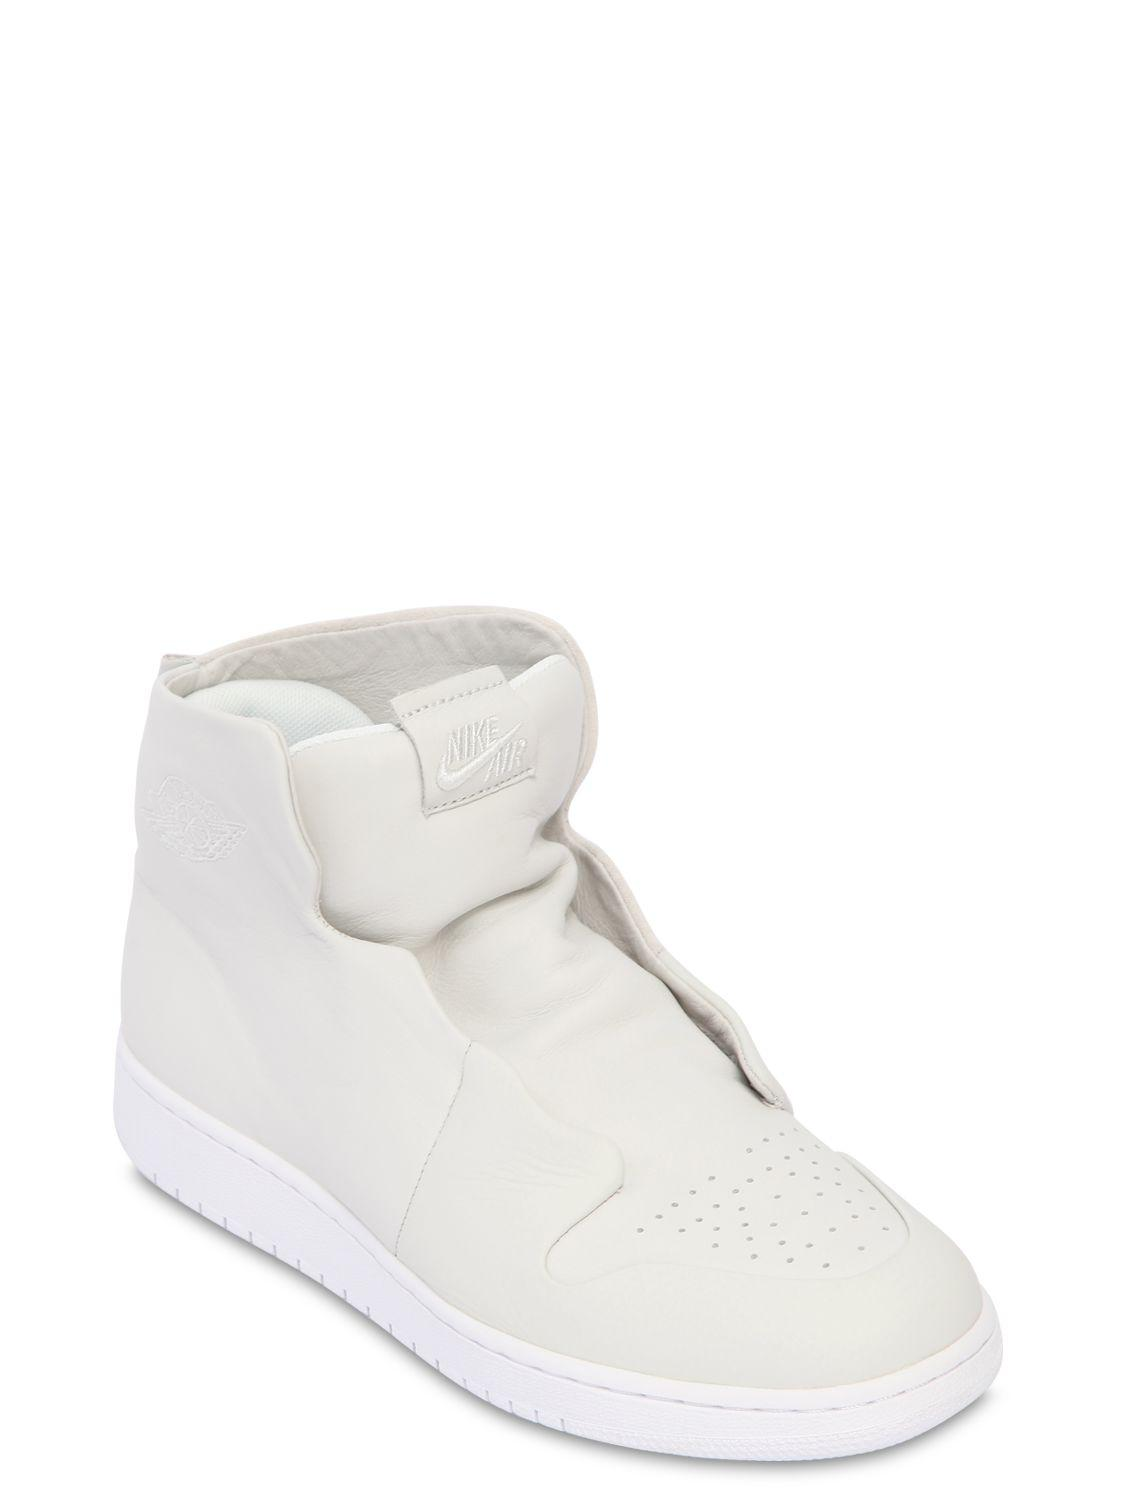 39a2514fc7e7 Nike Air Jordan 1 Sage Xx Mid Top Sneakers in White - Save 52% - Lyst